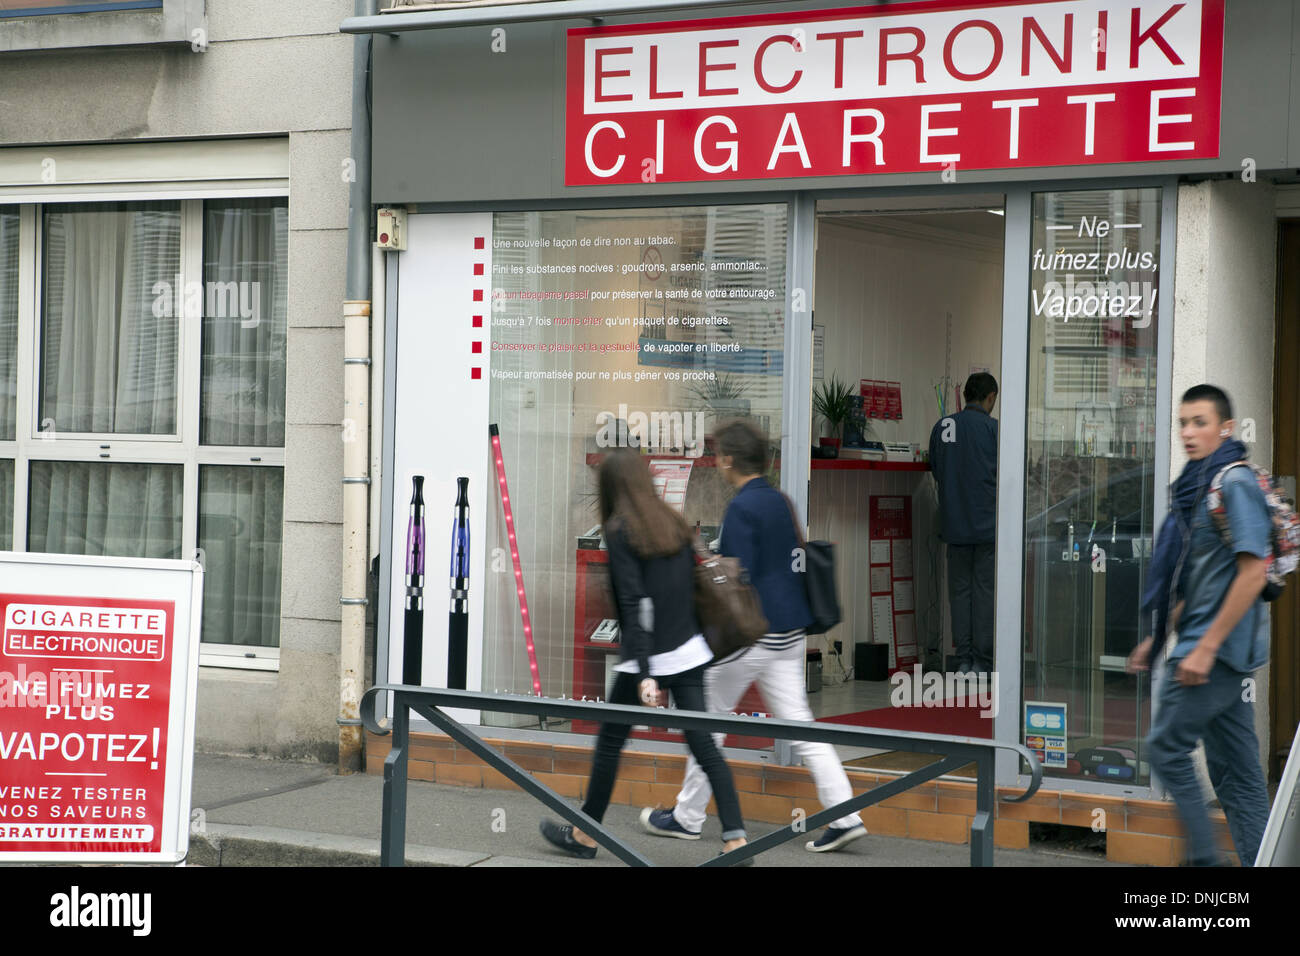 Are cigarettes More expensive in Europe